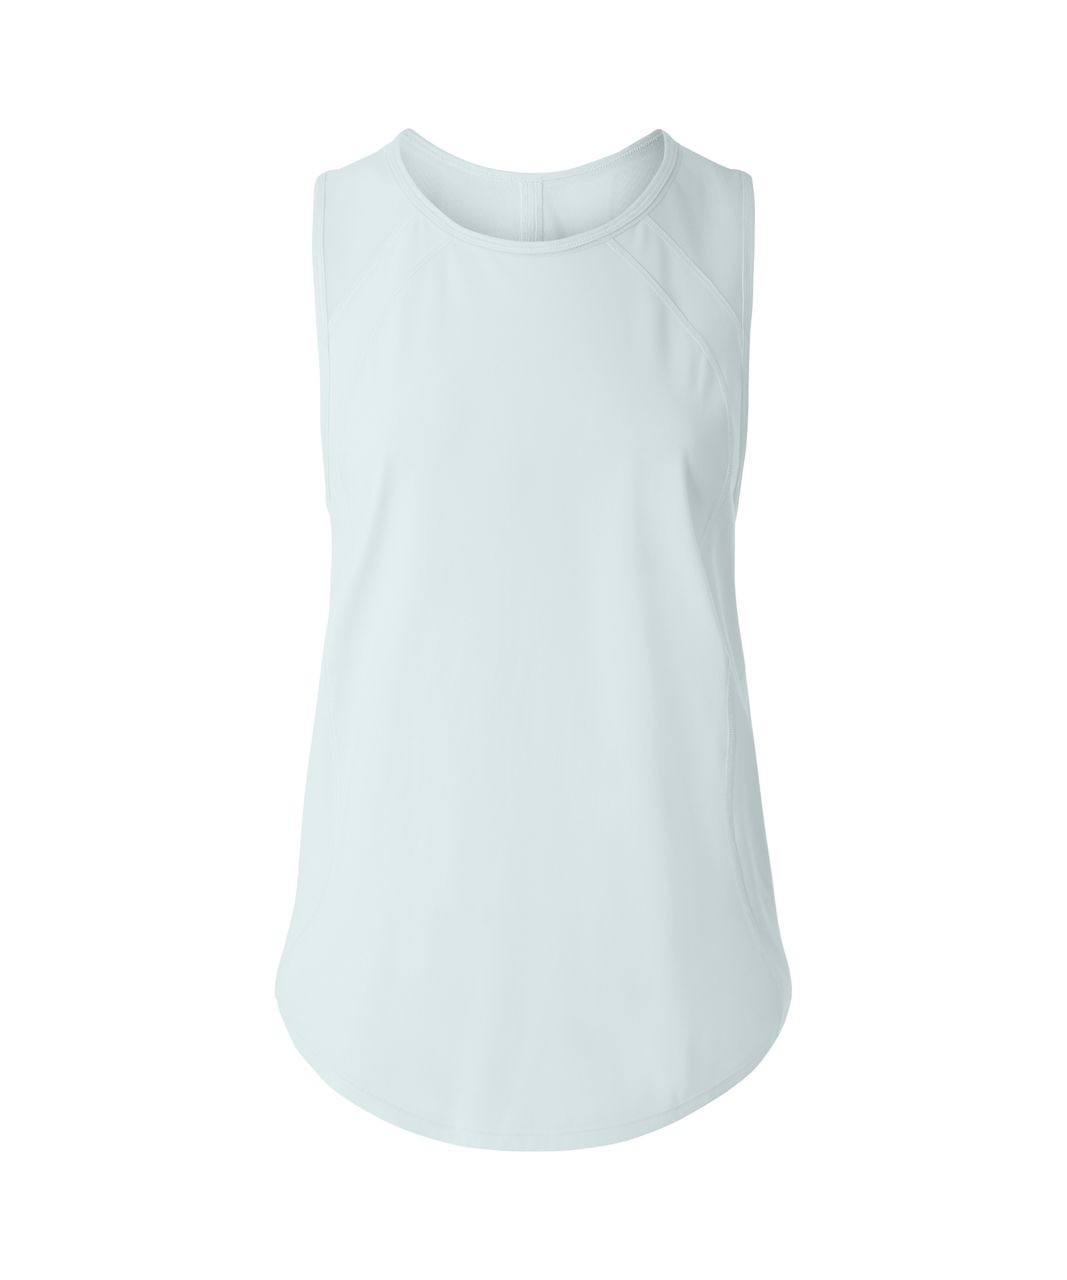 Lululemon Sculpt Tank - Sea Mist